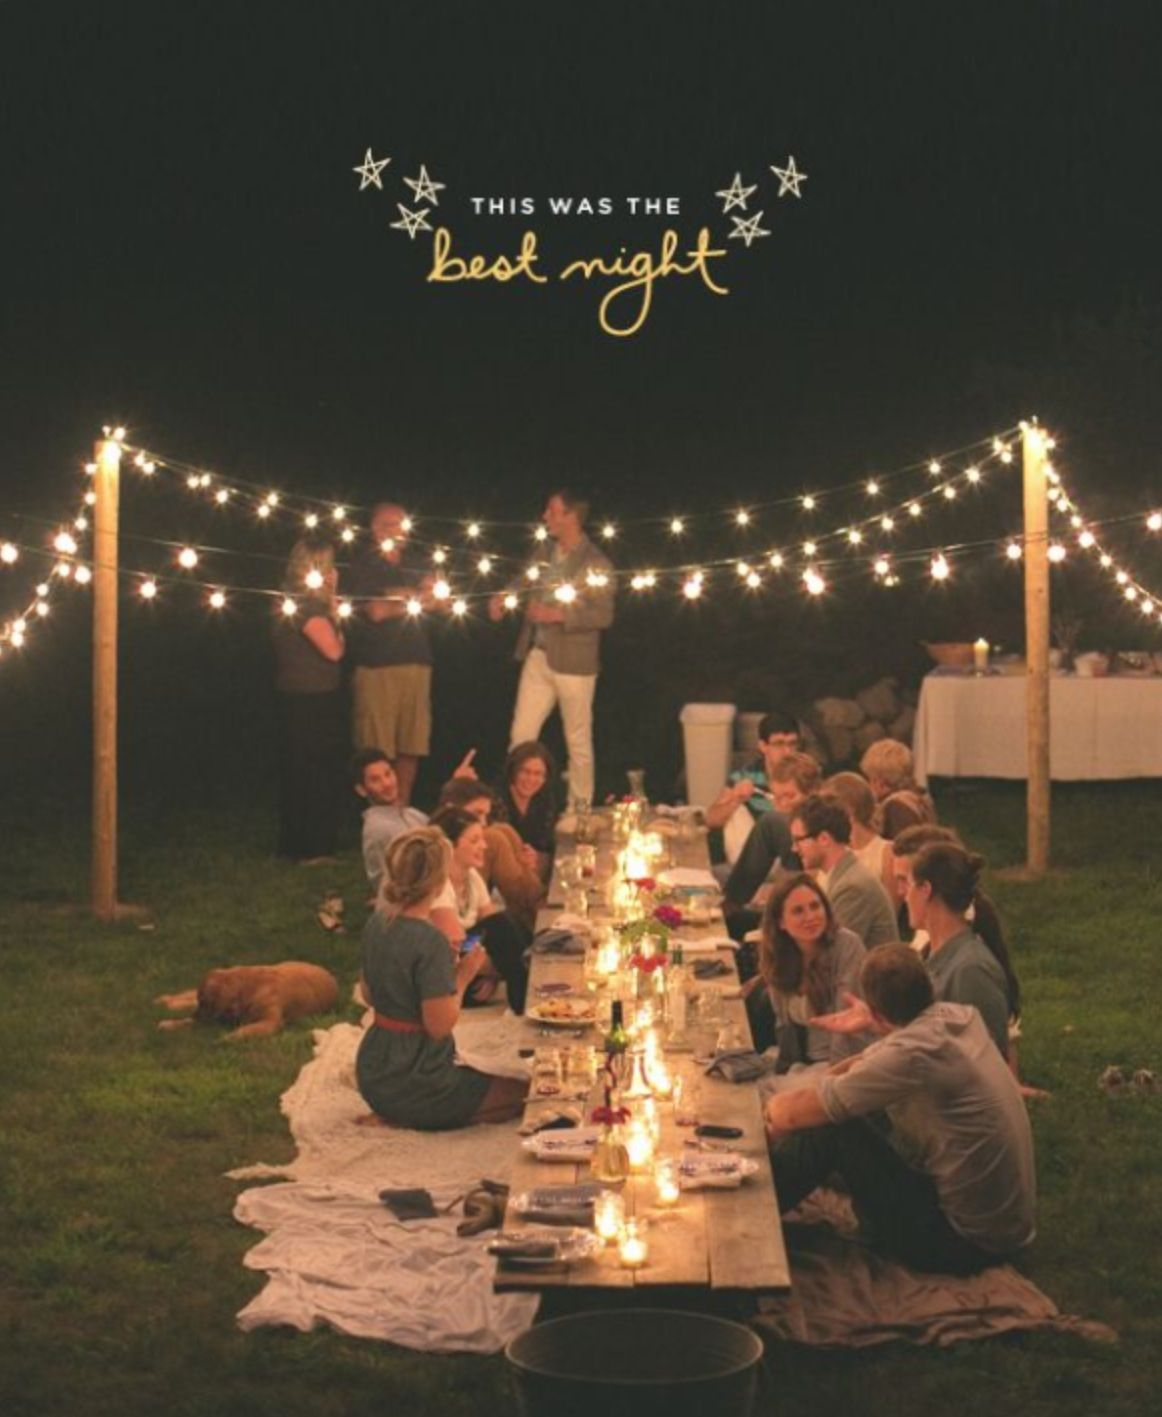 outdoor dinner party inspiration // the fresh exchange q lindo for an outdoor  party o picnic!